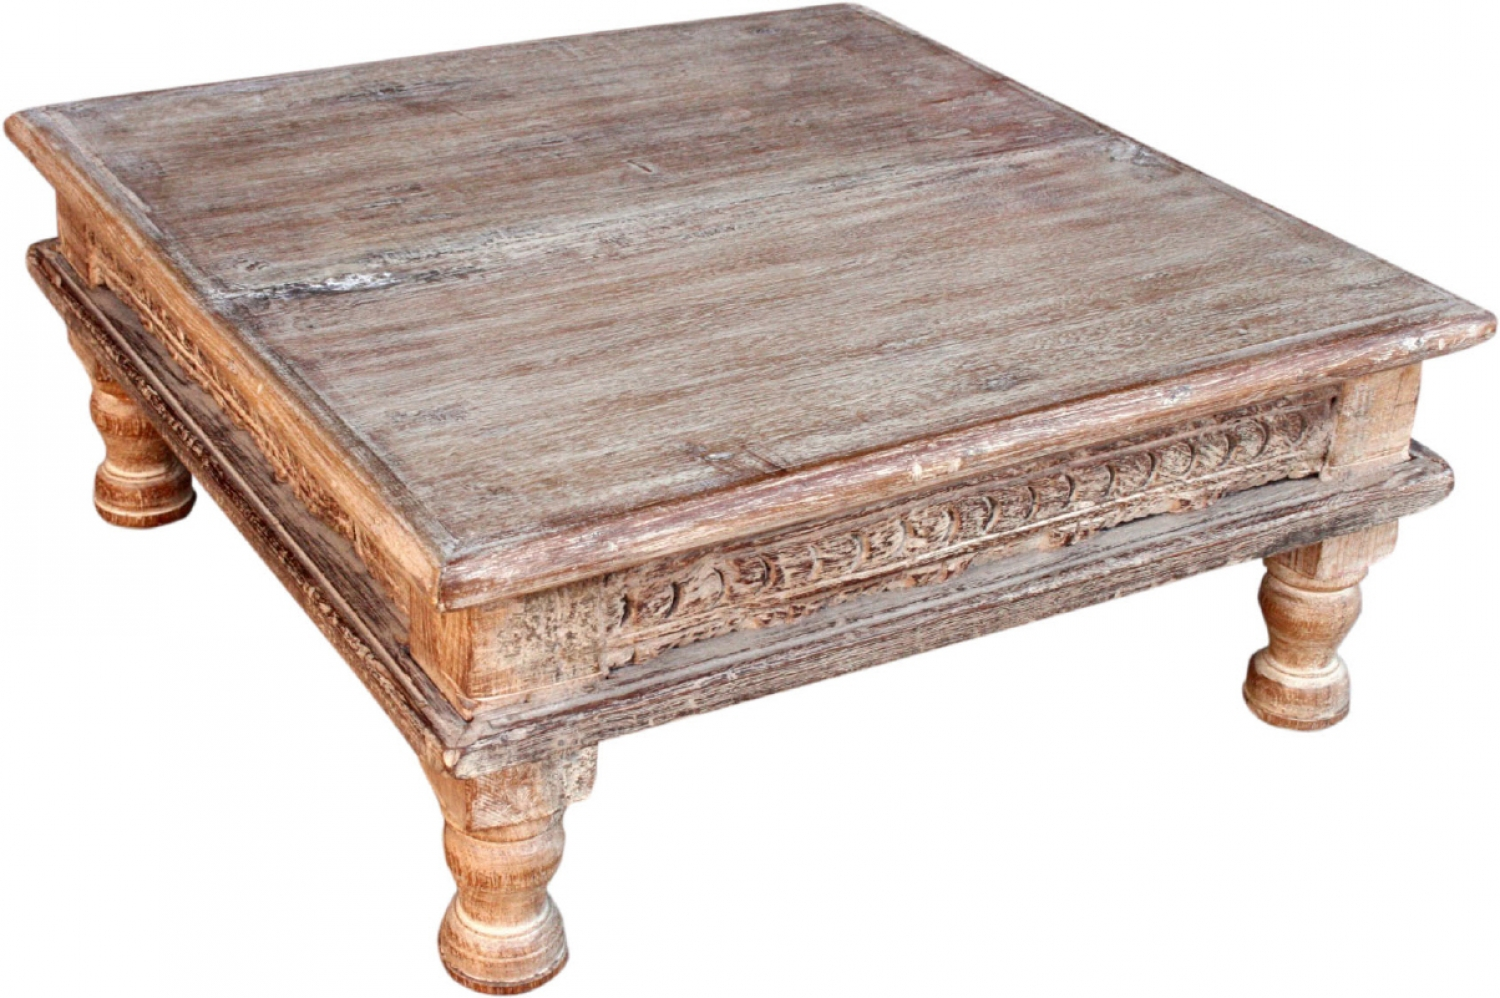 - Small Table, Flower Bench, Coffee Table, Side Table, Coffee Table